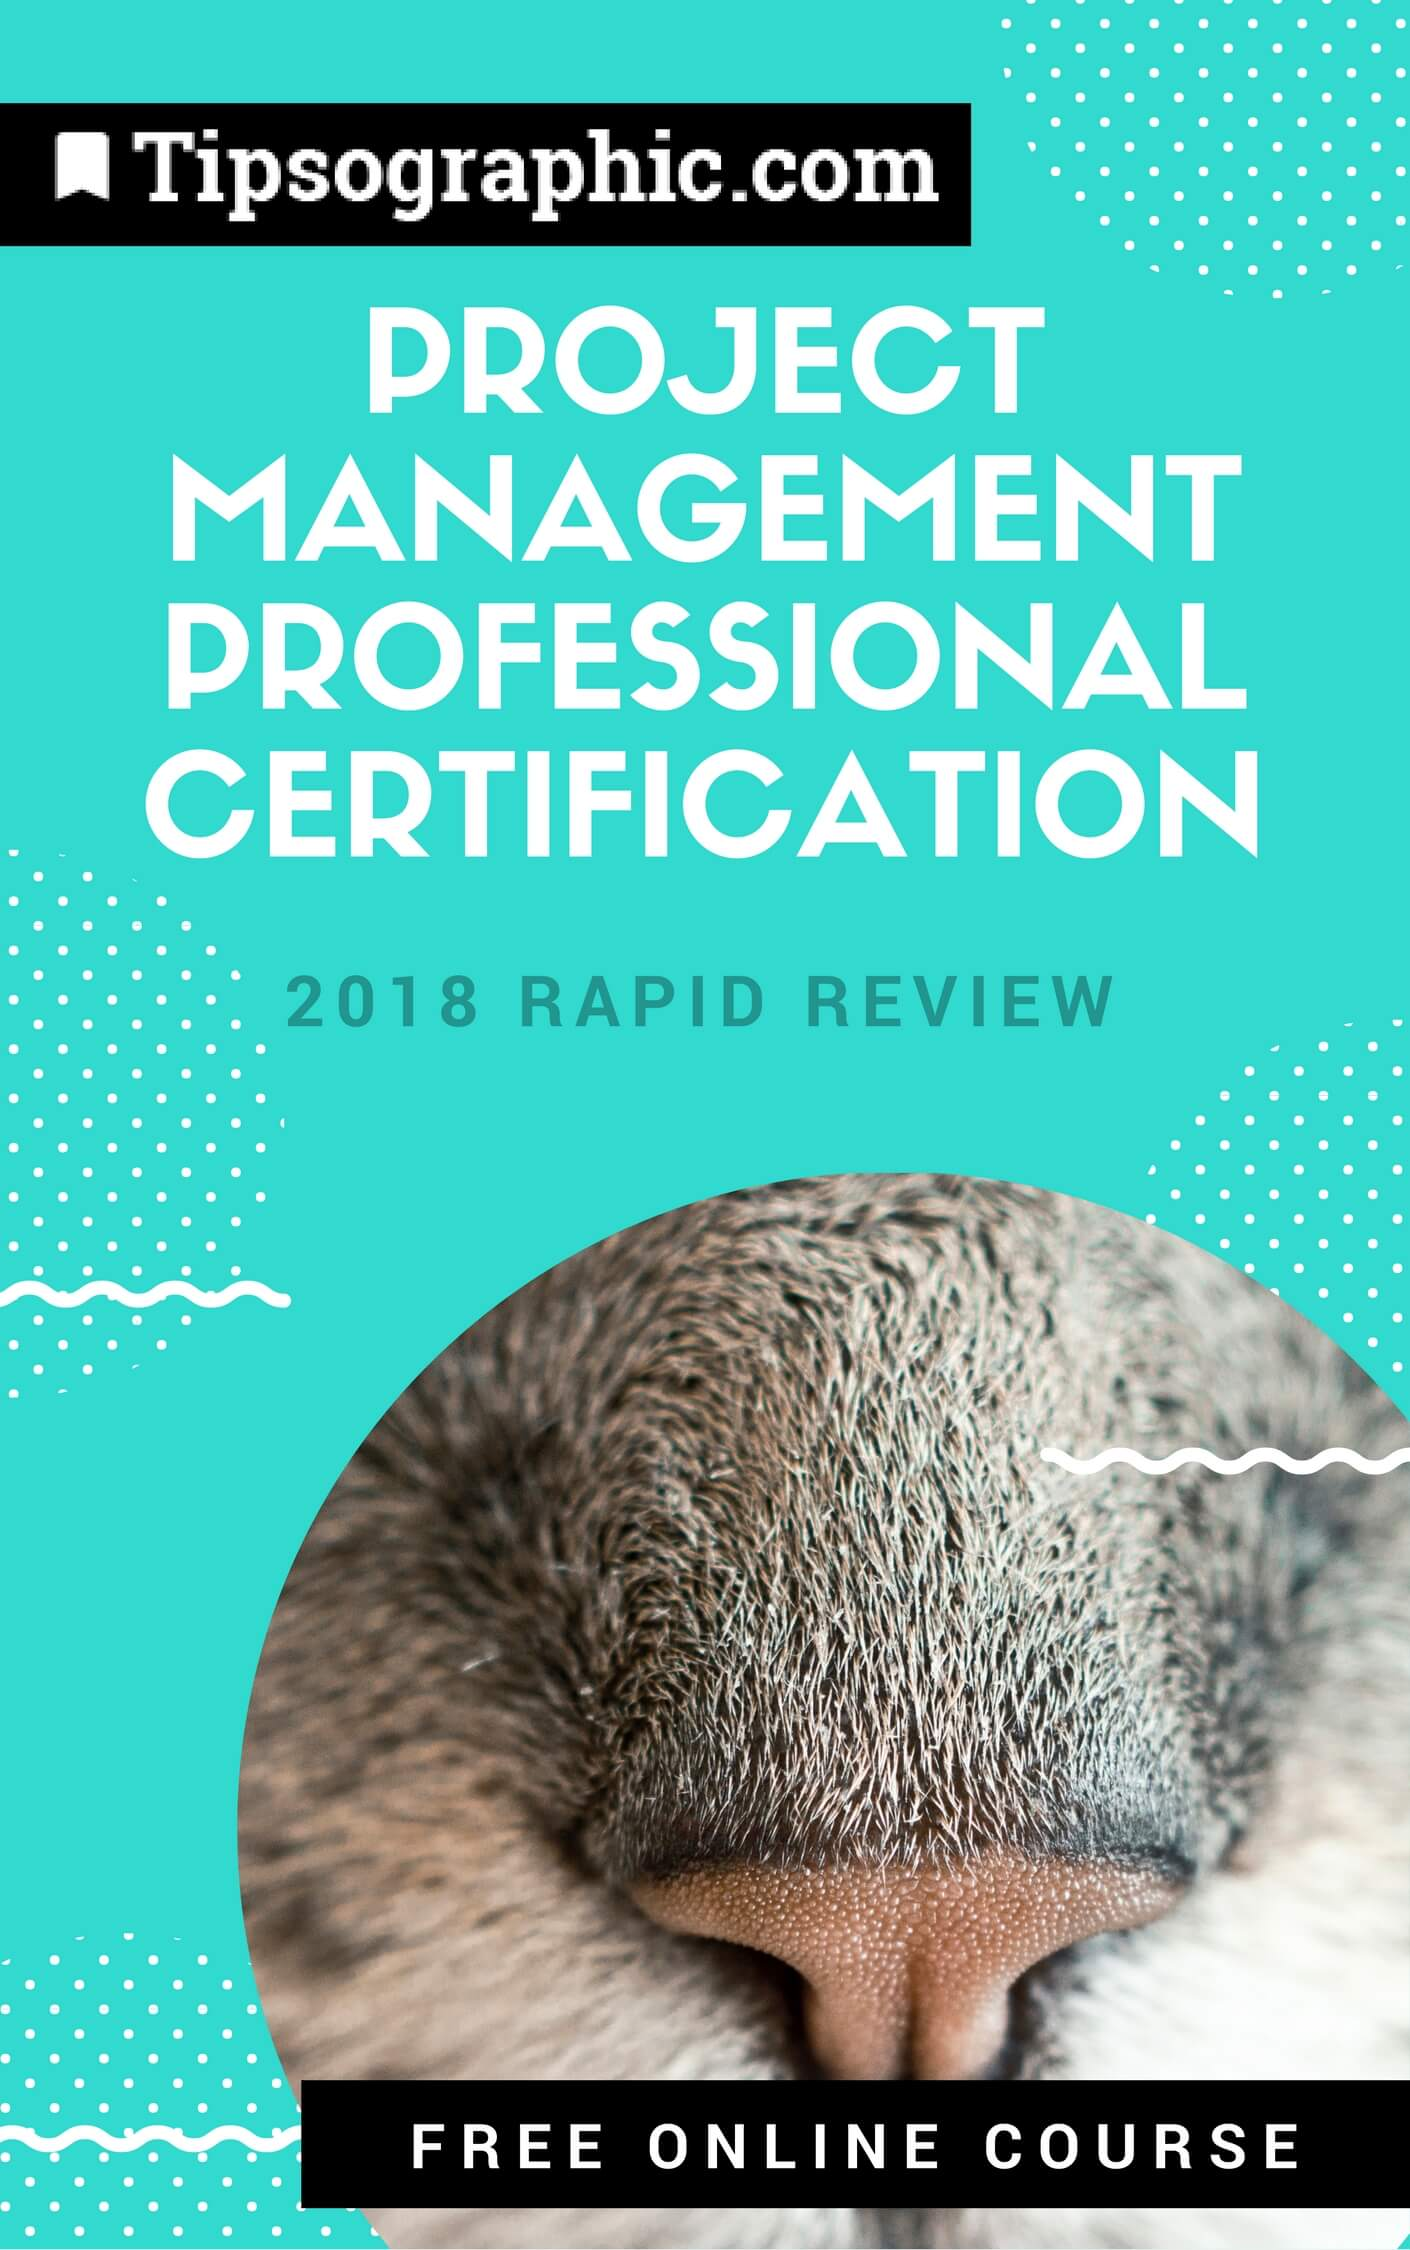 project management professional certification 2018 rapid review free online course tipsographic